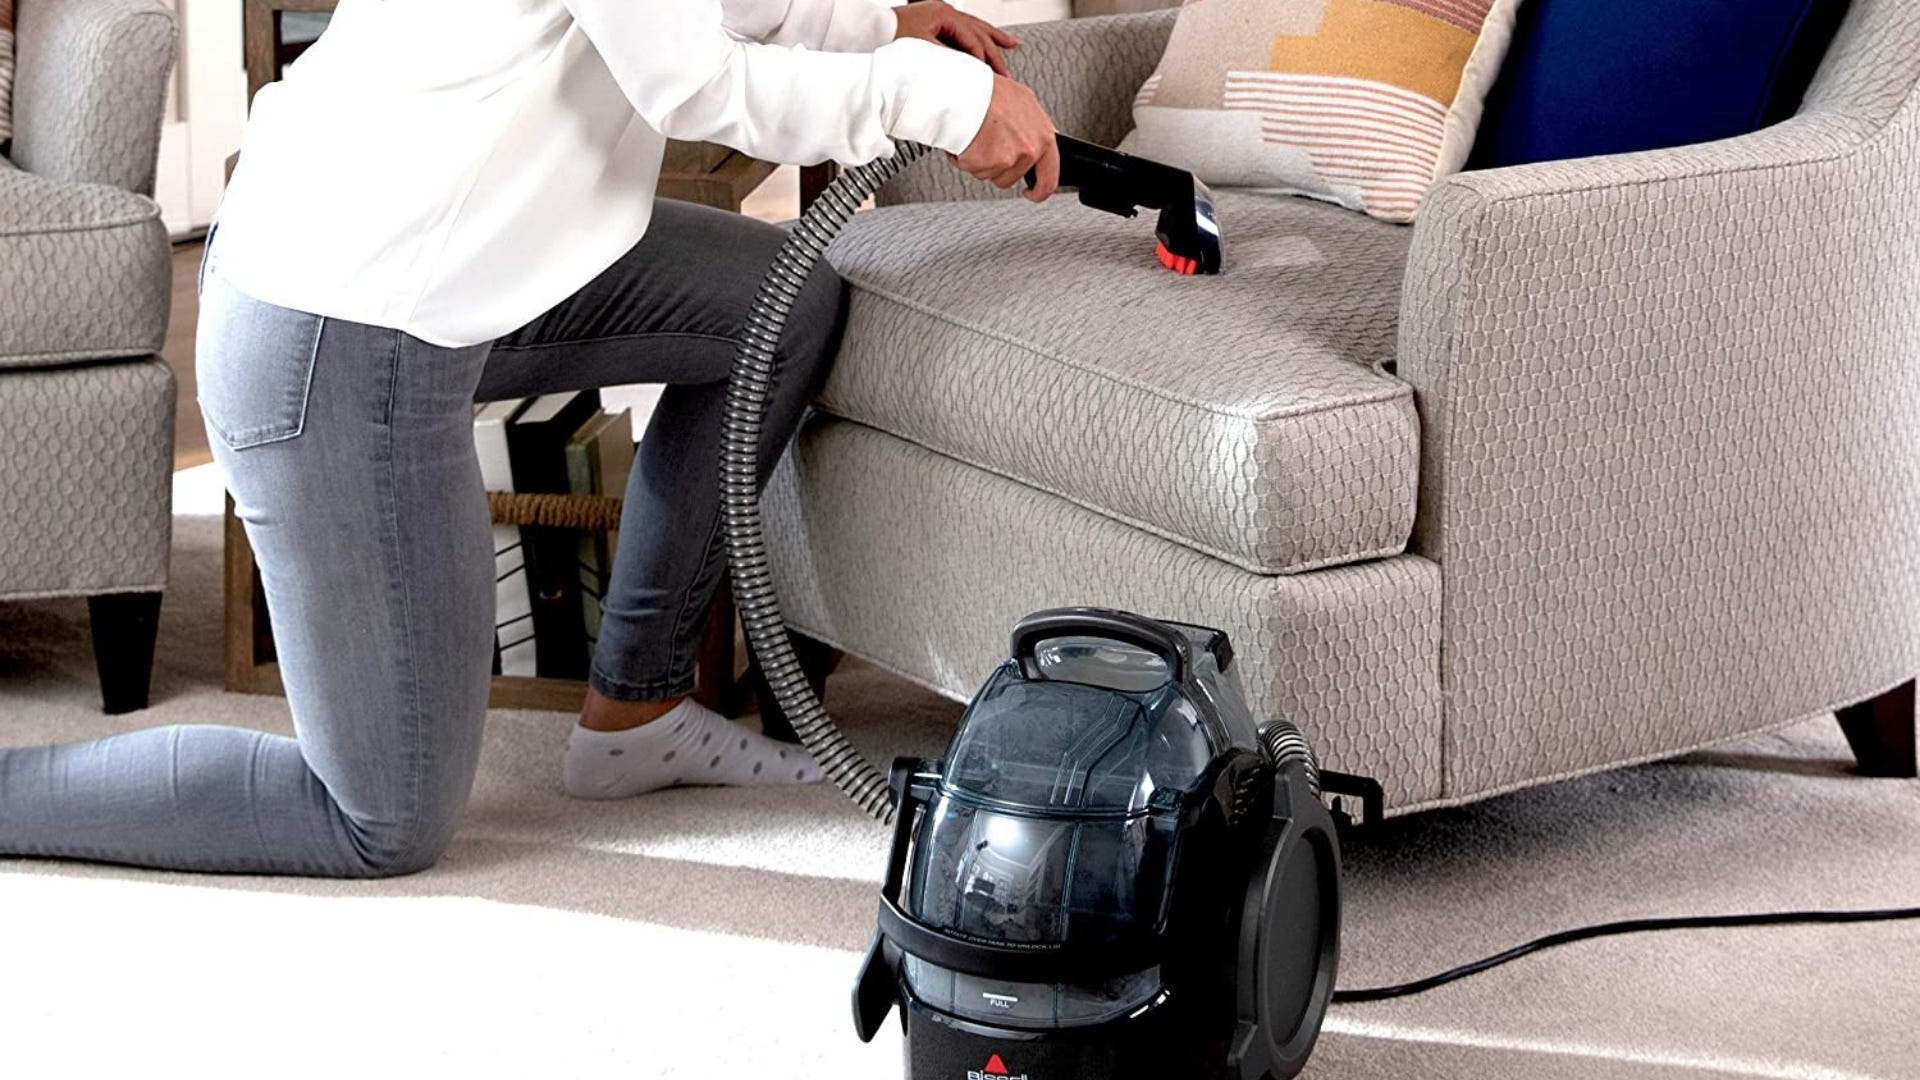 A woman vacuuming the upholstery on a chair with the hose on the Bissell 3624 Spot Clean Portable Vacuum.